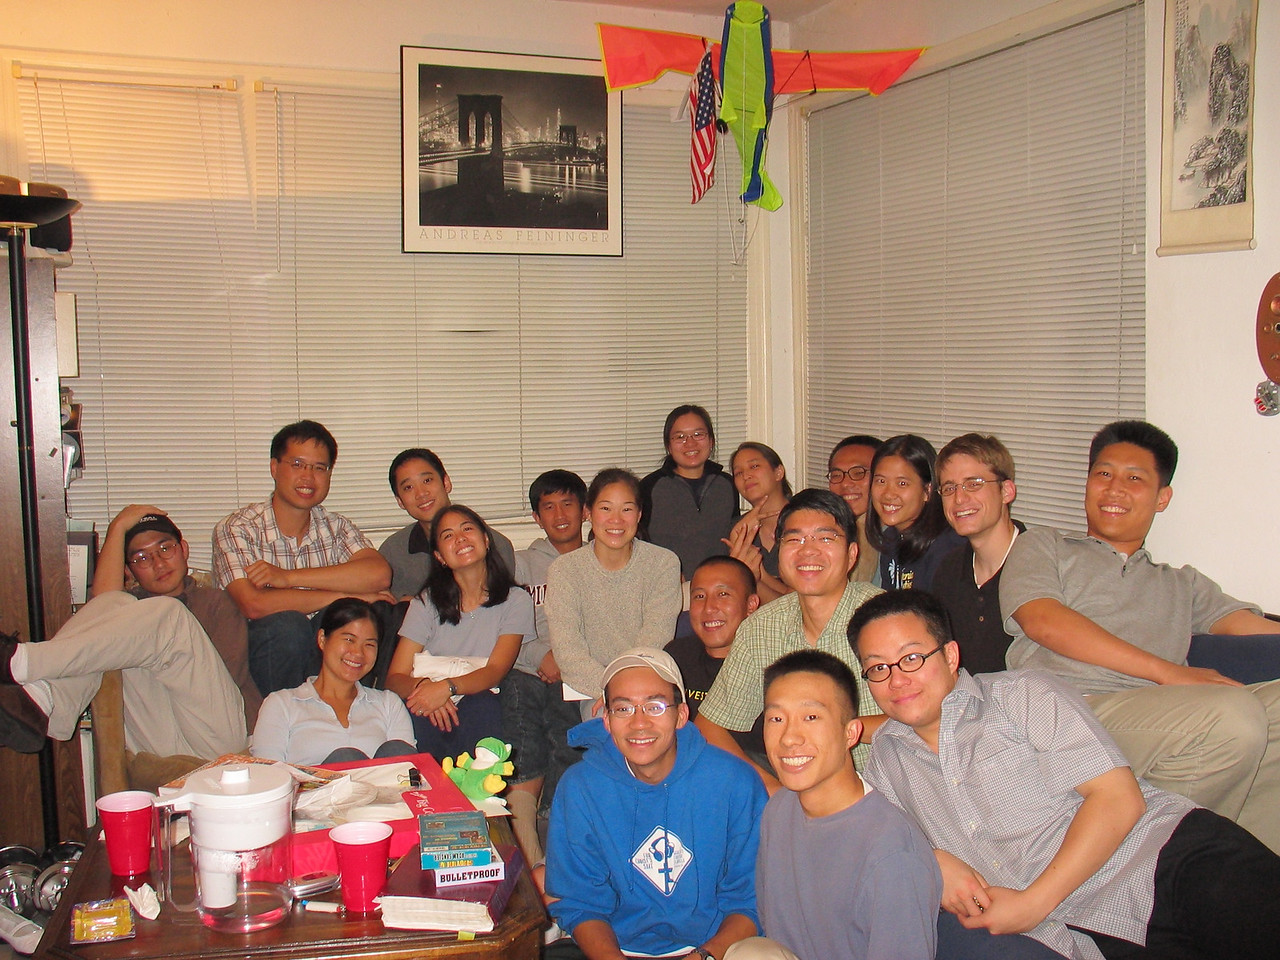 2004 07 27 Tuesday - Group pic 1 @ Eileen & Allen birthday-farewell get together